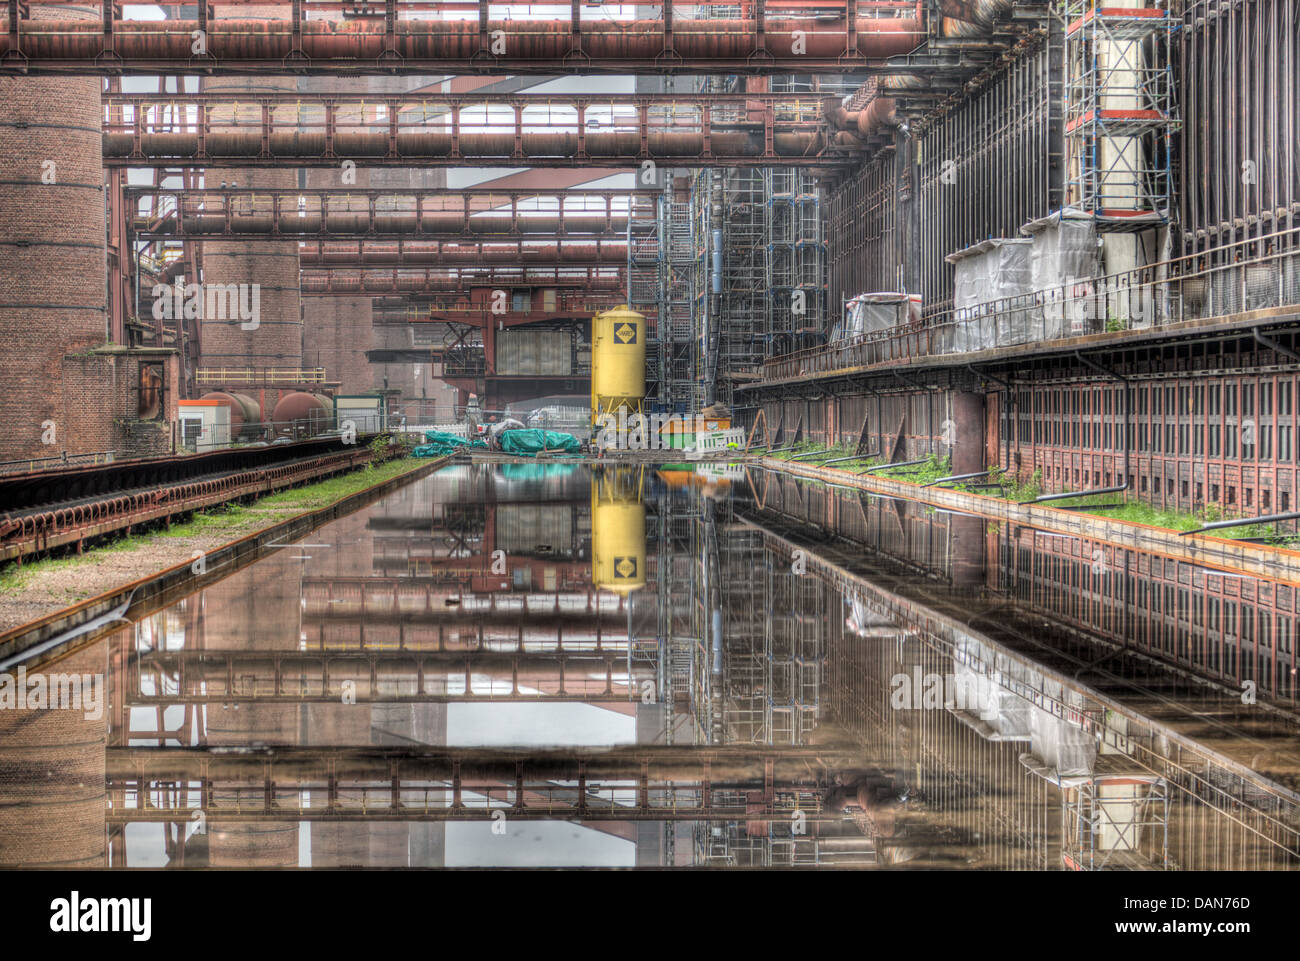 The industrial reflection pool in the deserted Zollverein coking plant in Essen, Germany. - Stock Image